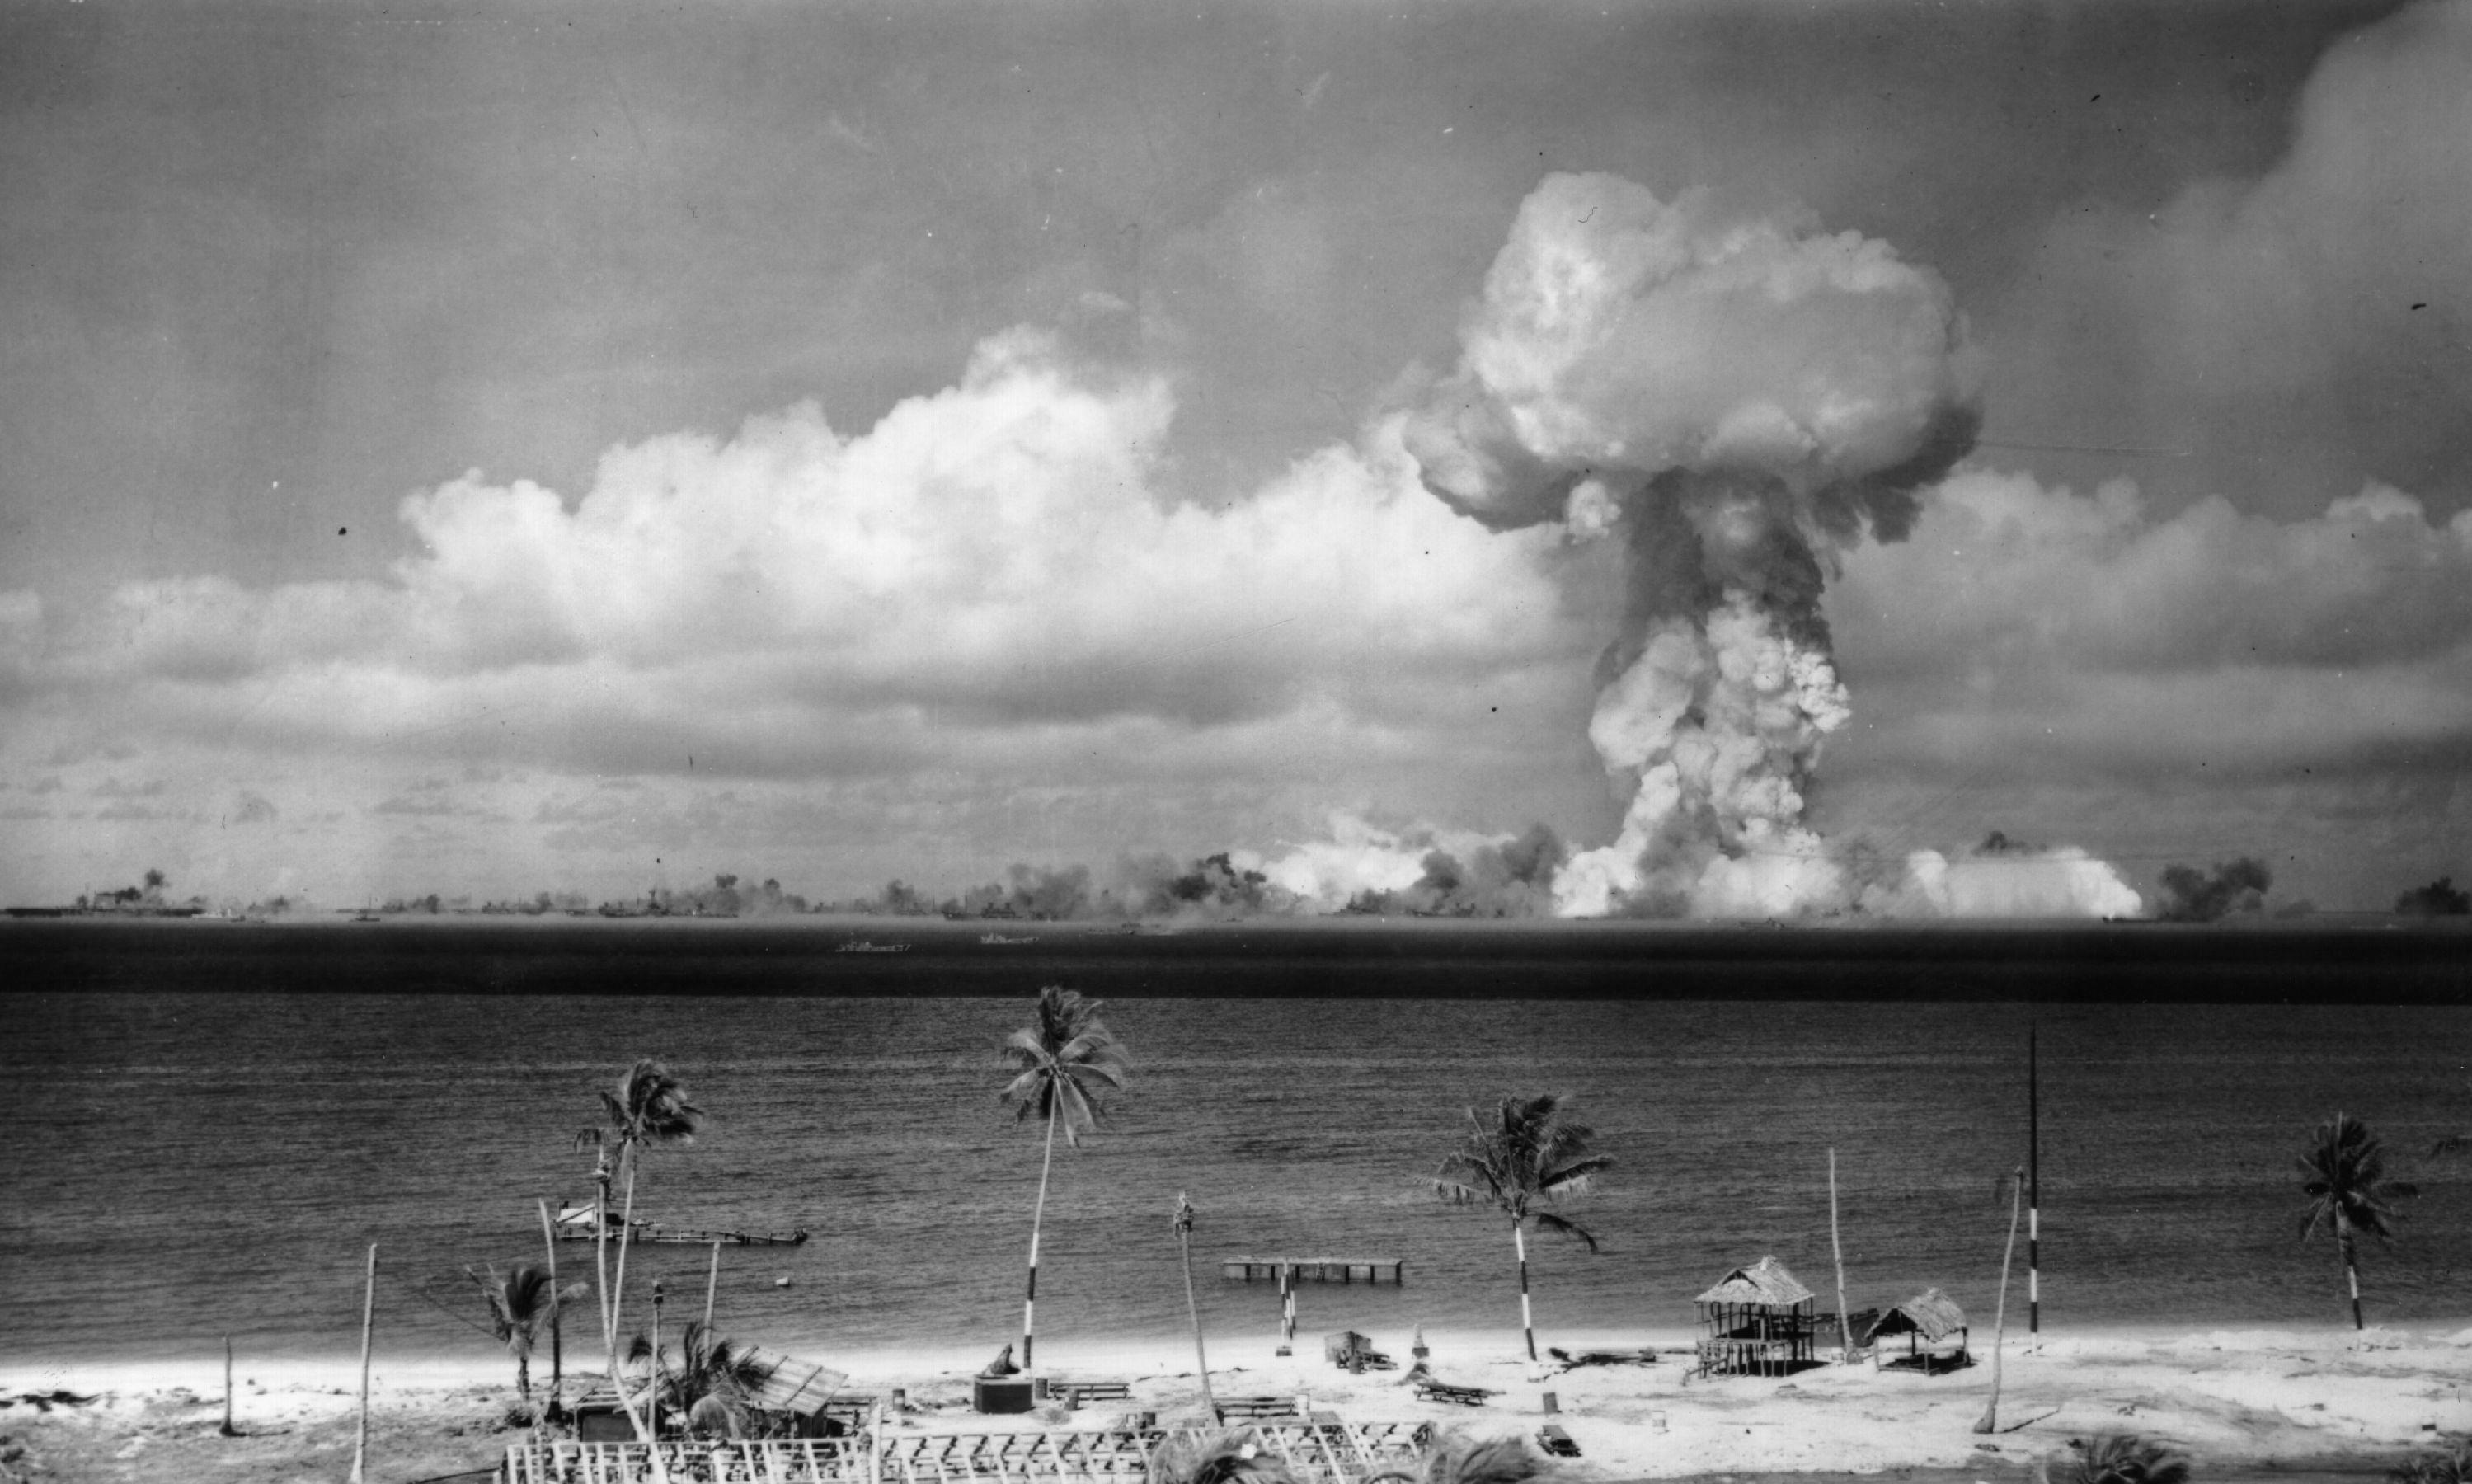 Strategies for nuclear weapons and waste